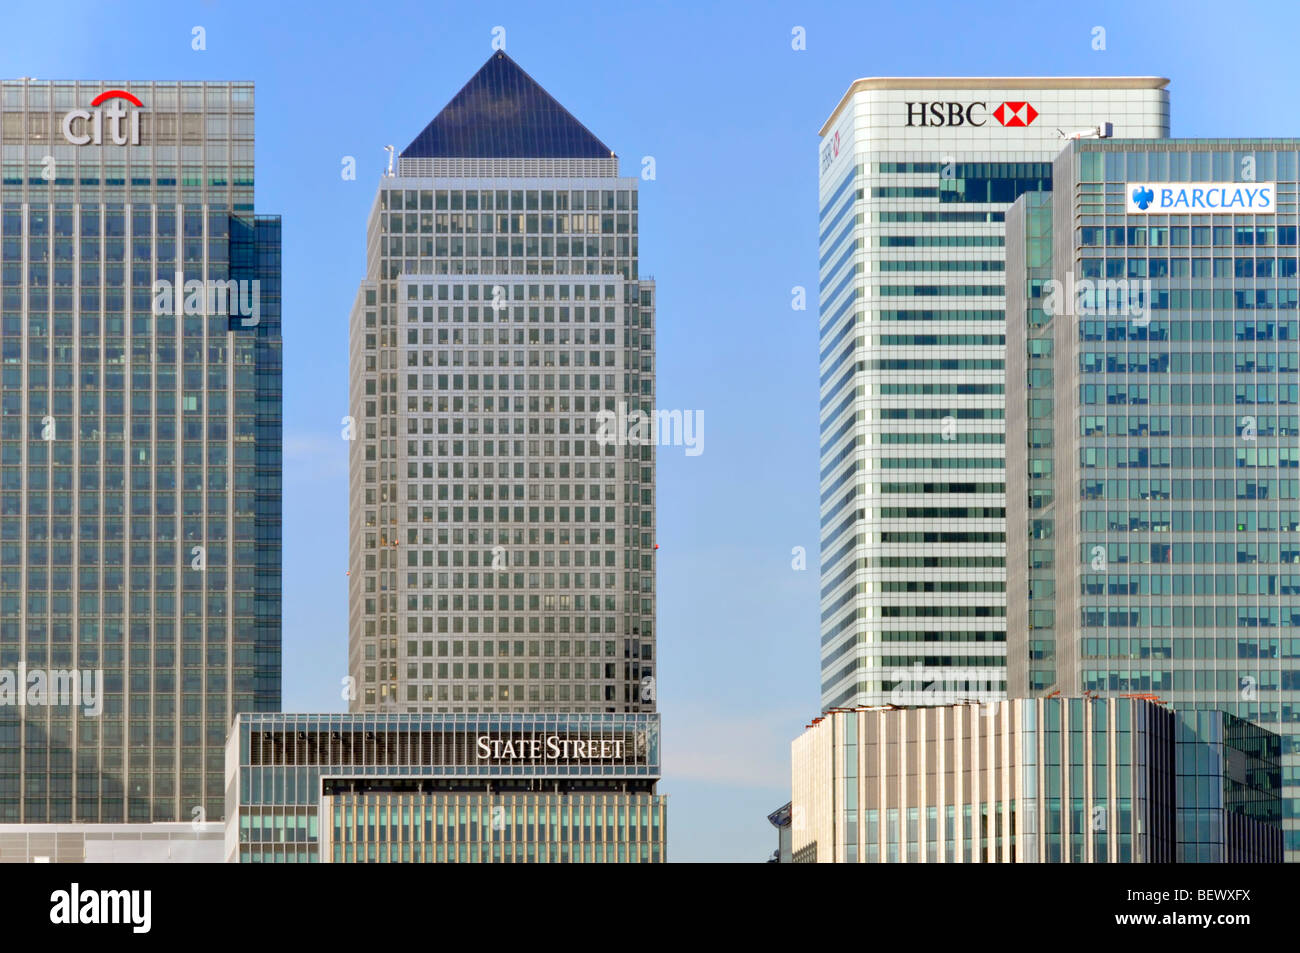 Bank offices based at Canary Wharf in London Docklands - Stock Image